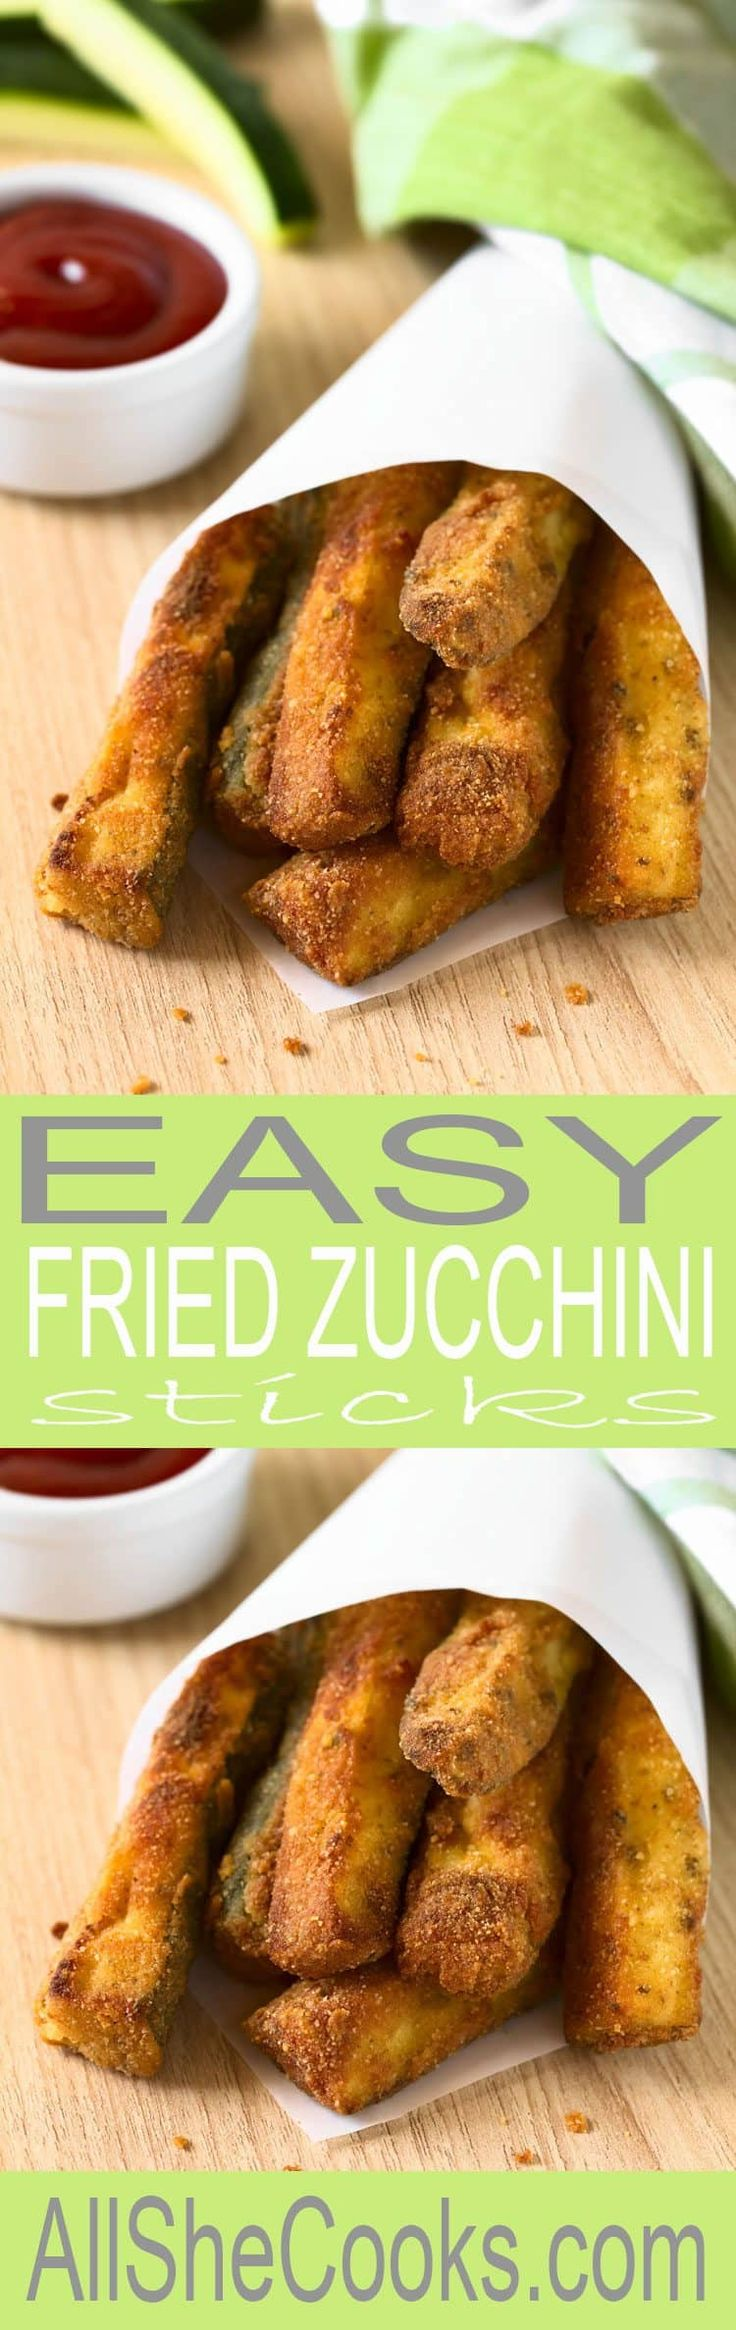 Copycat Zoo Sticks are fried zucchini sticks that are amazingly delicious. This is a fun and easy appetizer recipe. Full of flavor.